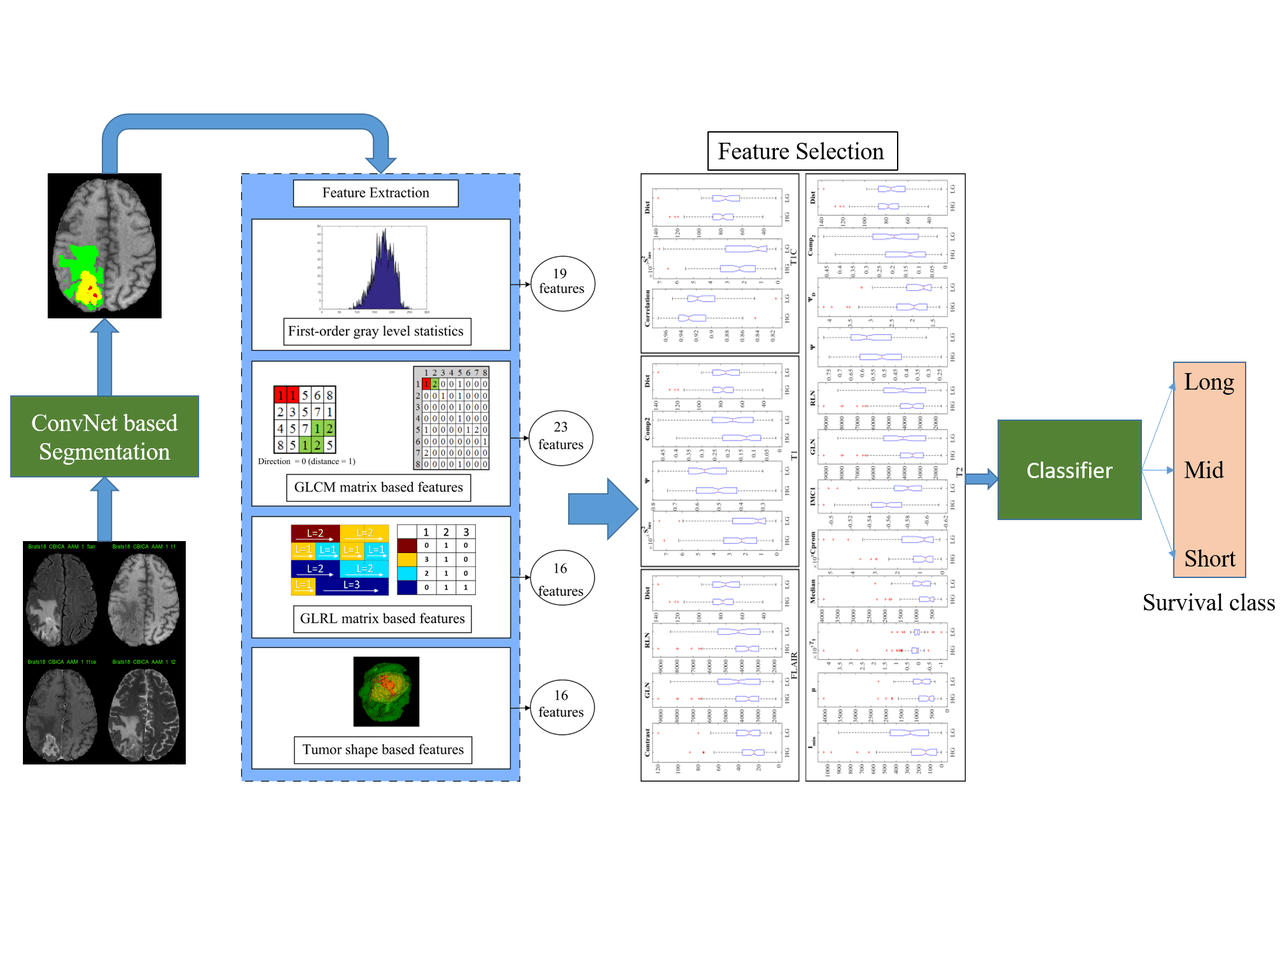 Deep Learning with Radiomics for the Segmentation and